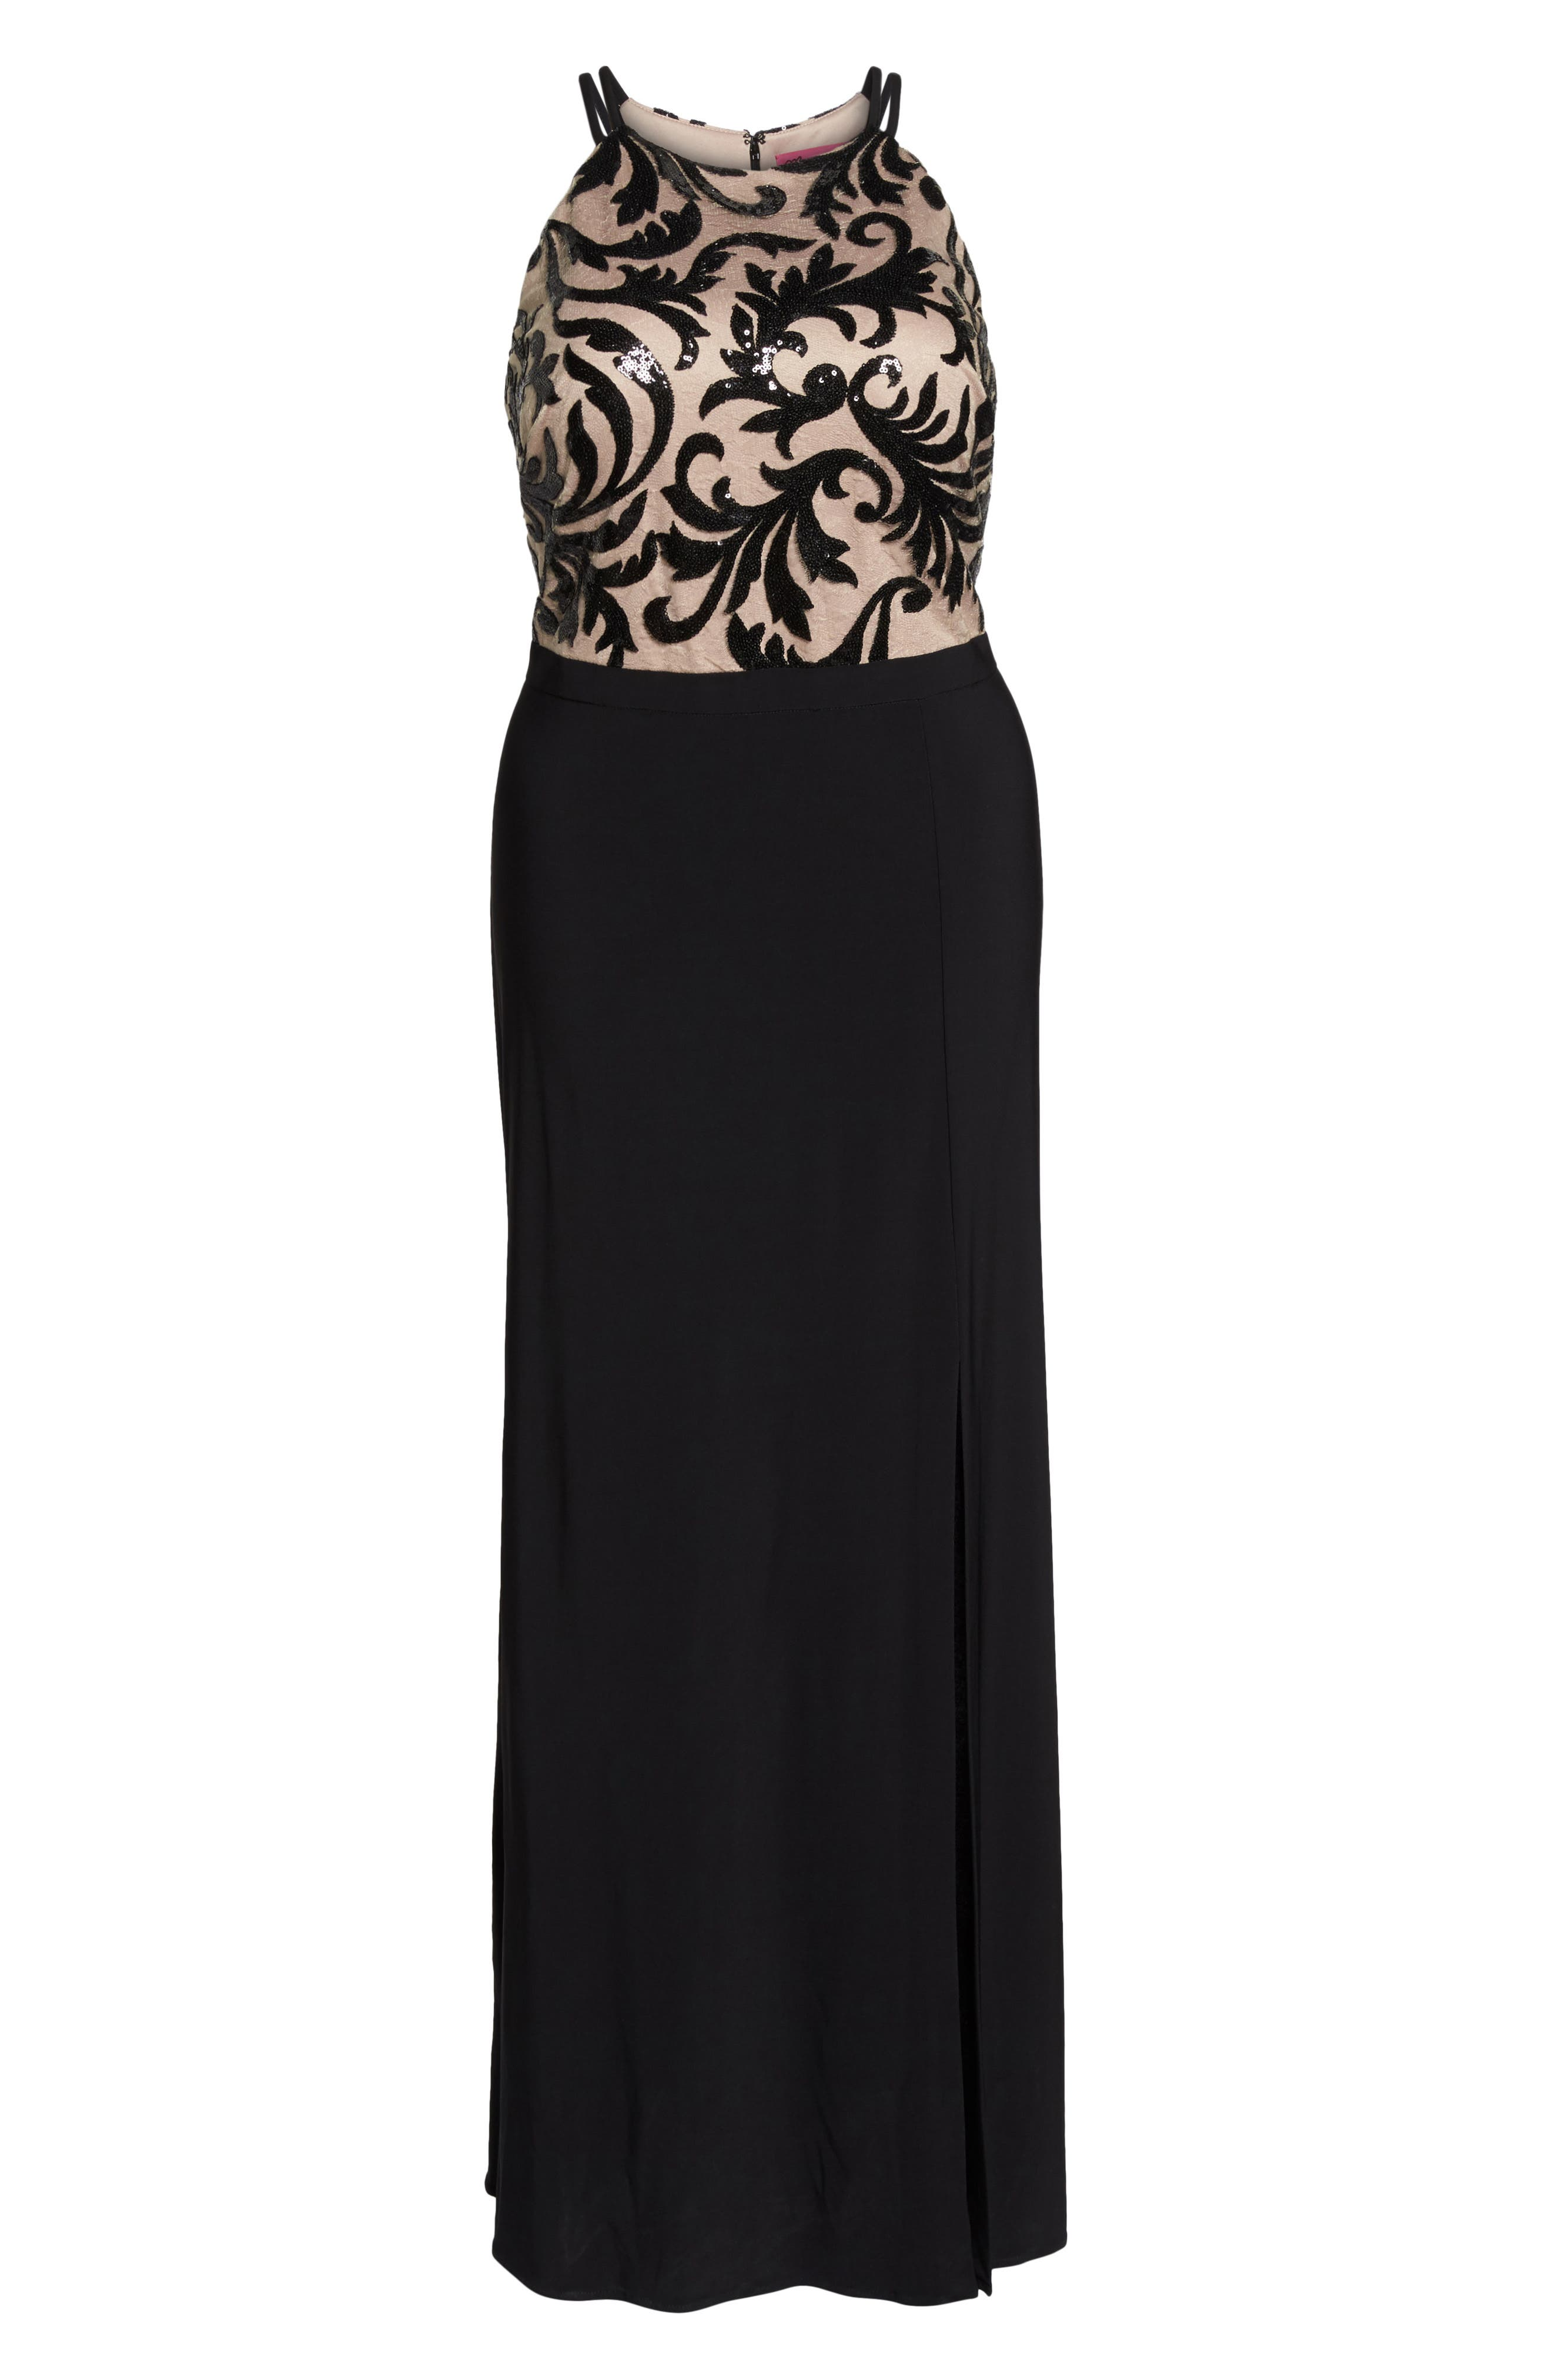 Sequin Bodice Gown,                             Alternate thumbnail 6, color,                             BLACK/ NUDE